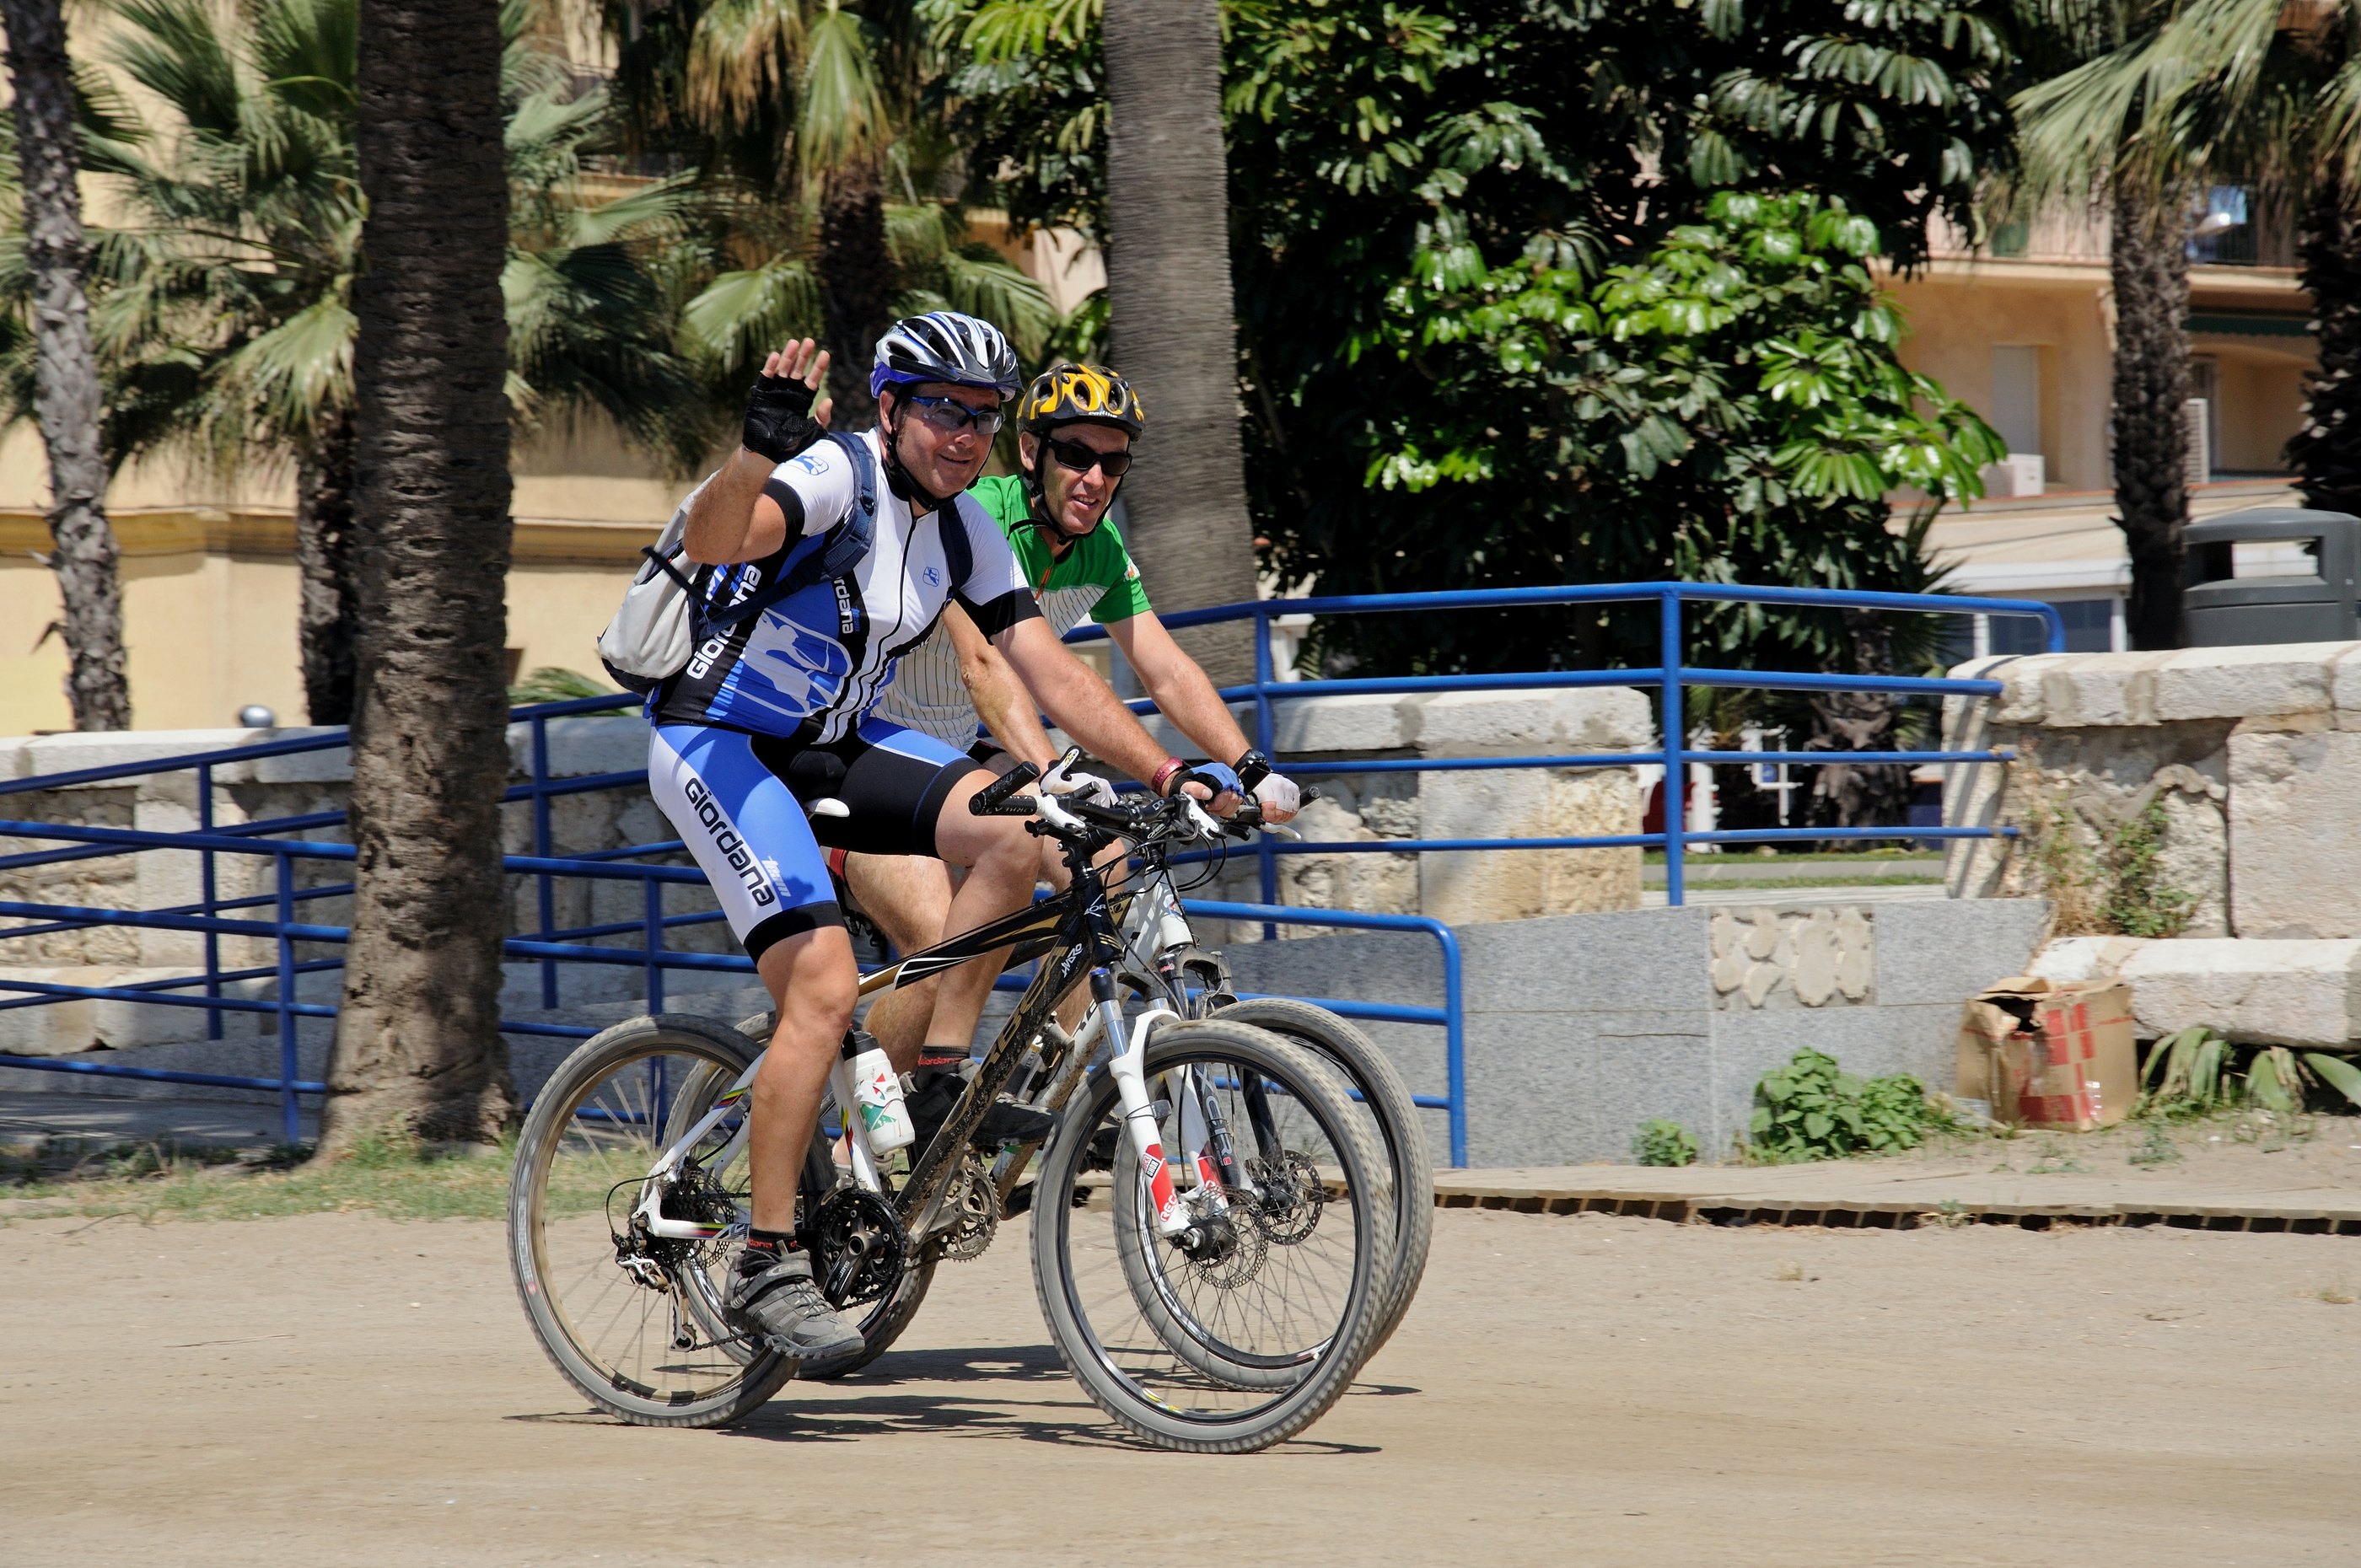 Cyclists on promenade, Málaga.